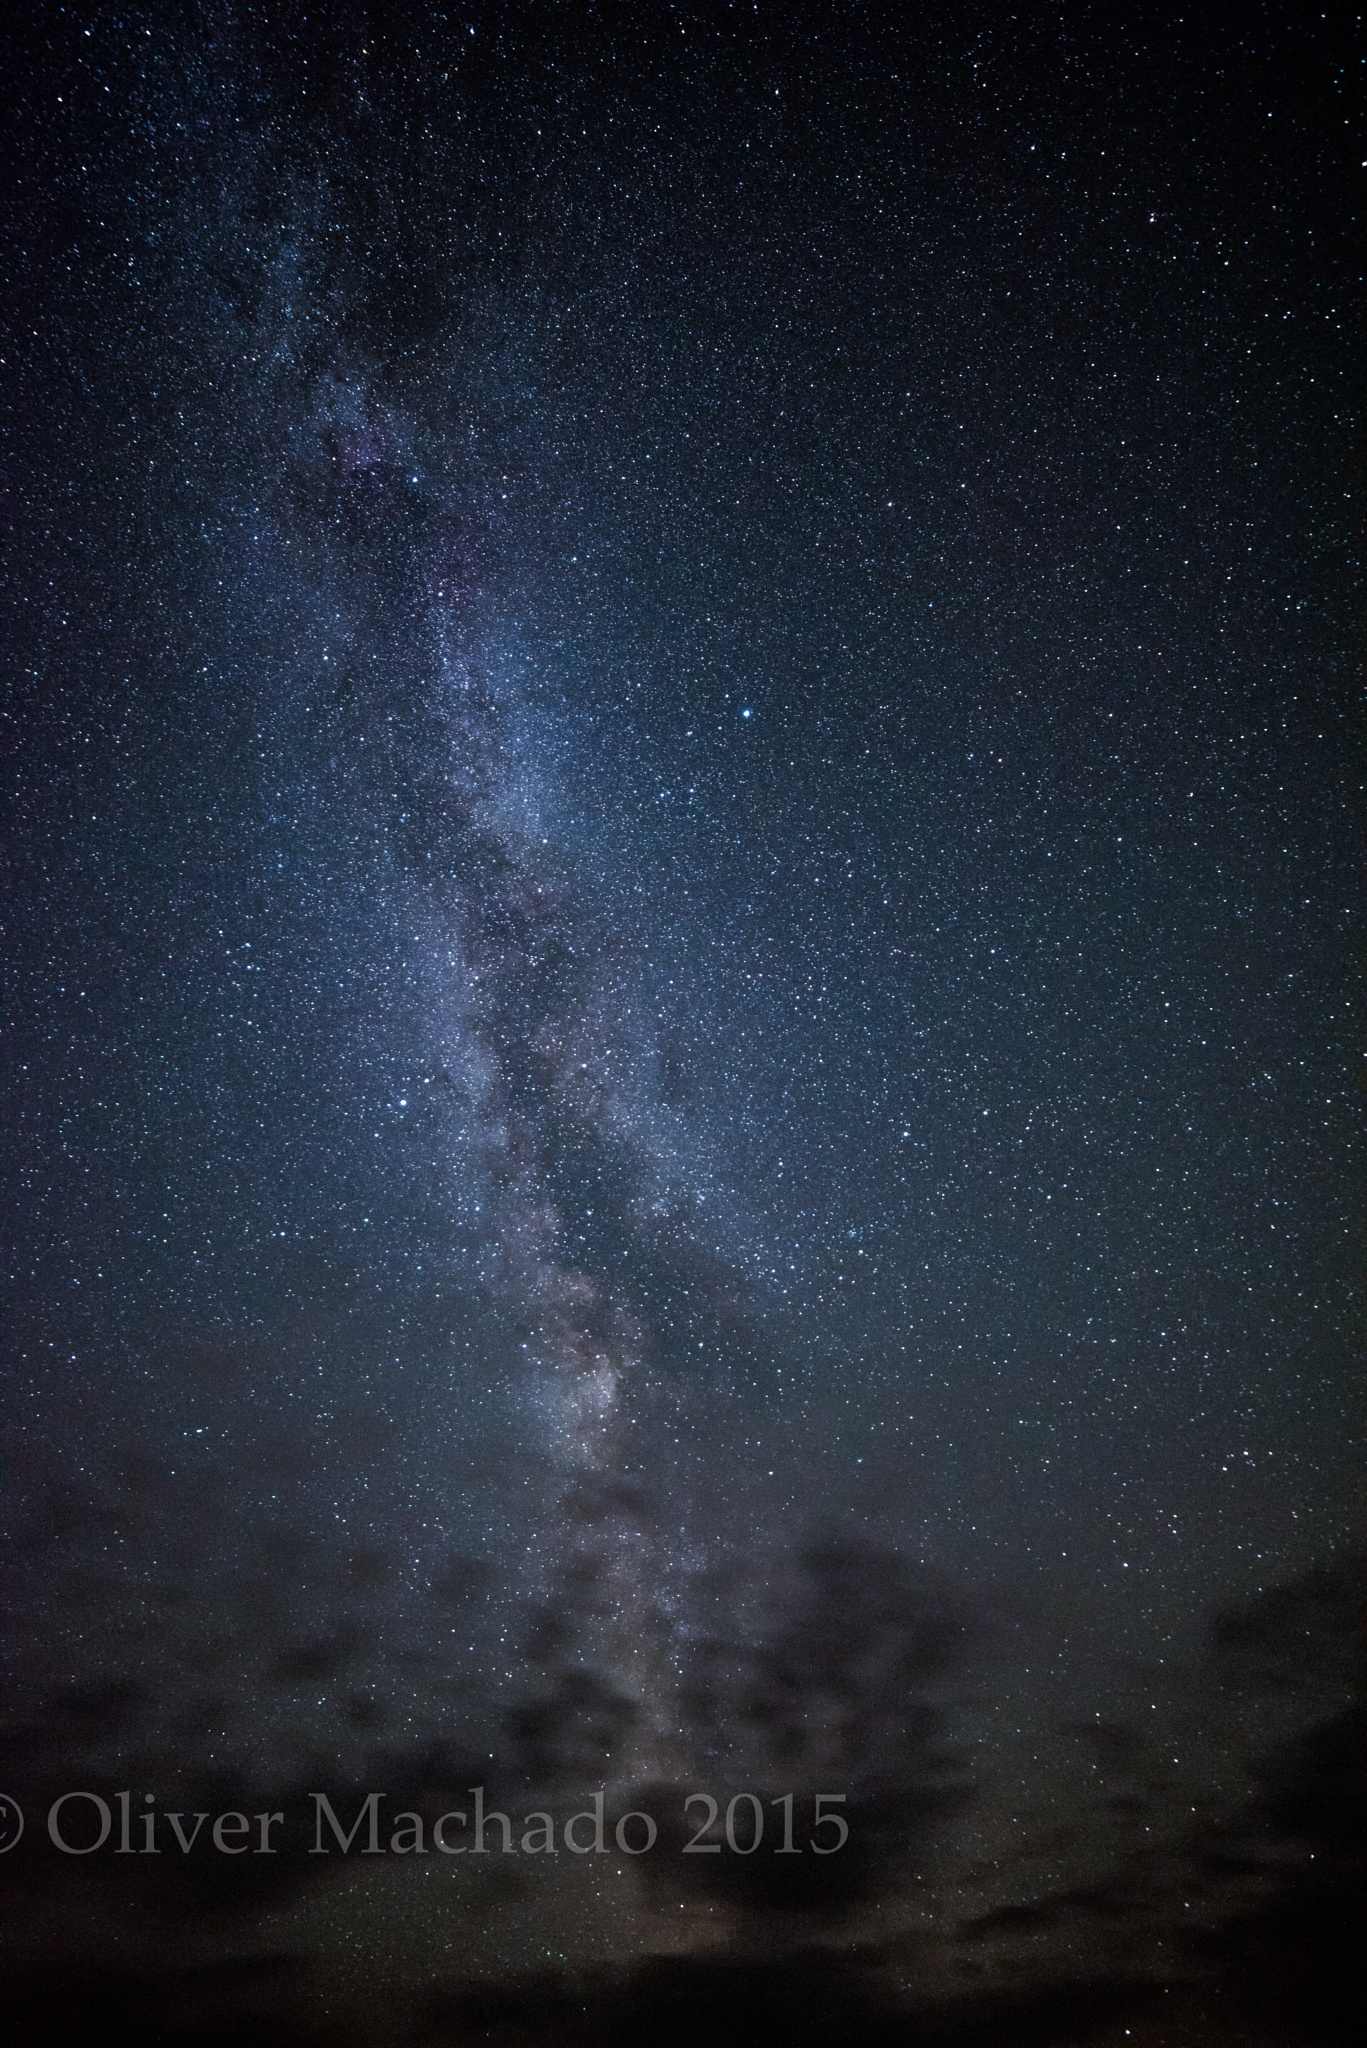 The Milky Way by Oliver Machado